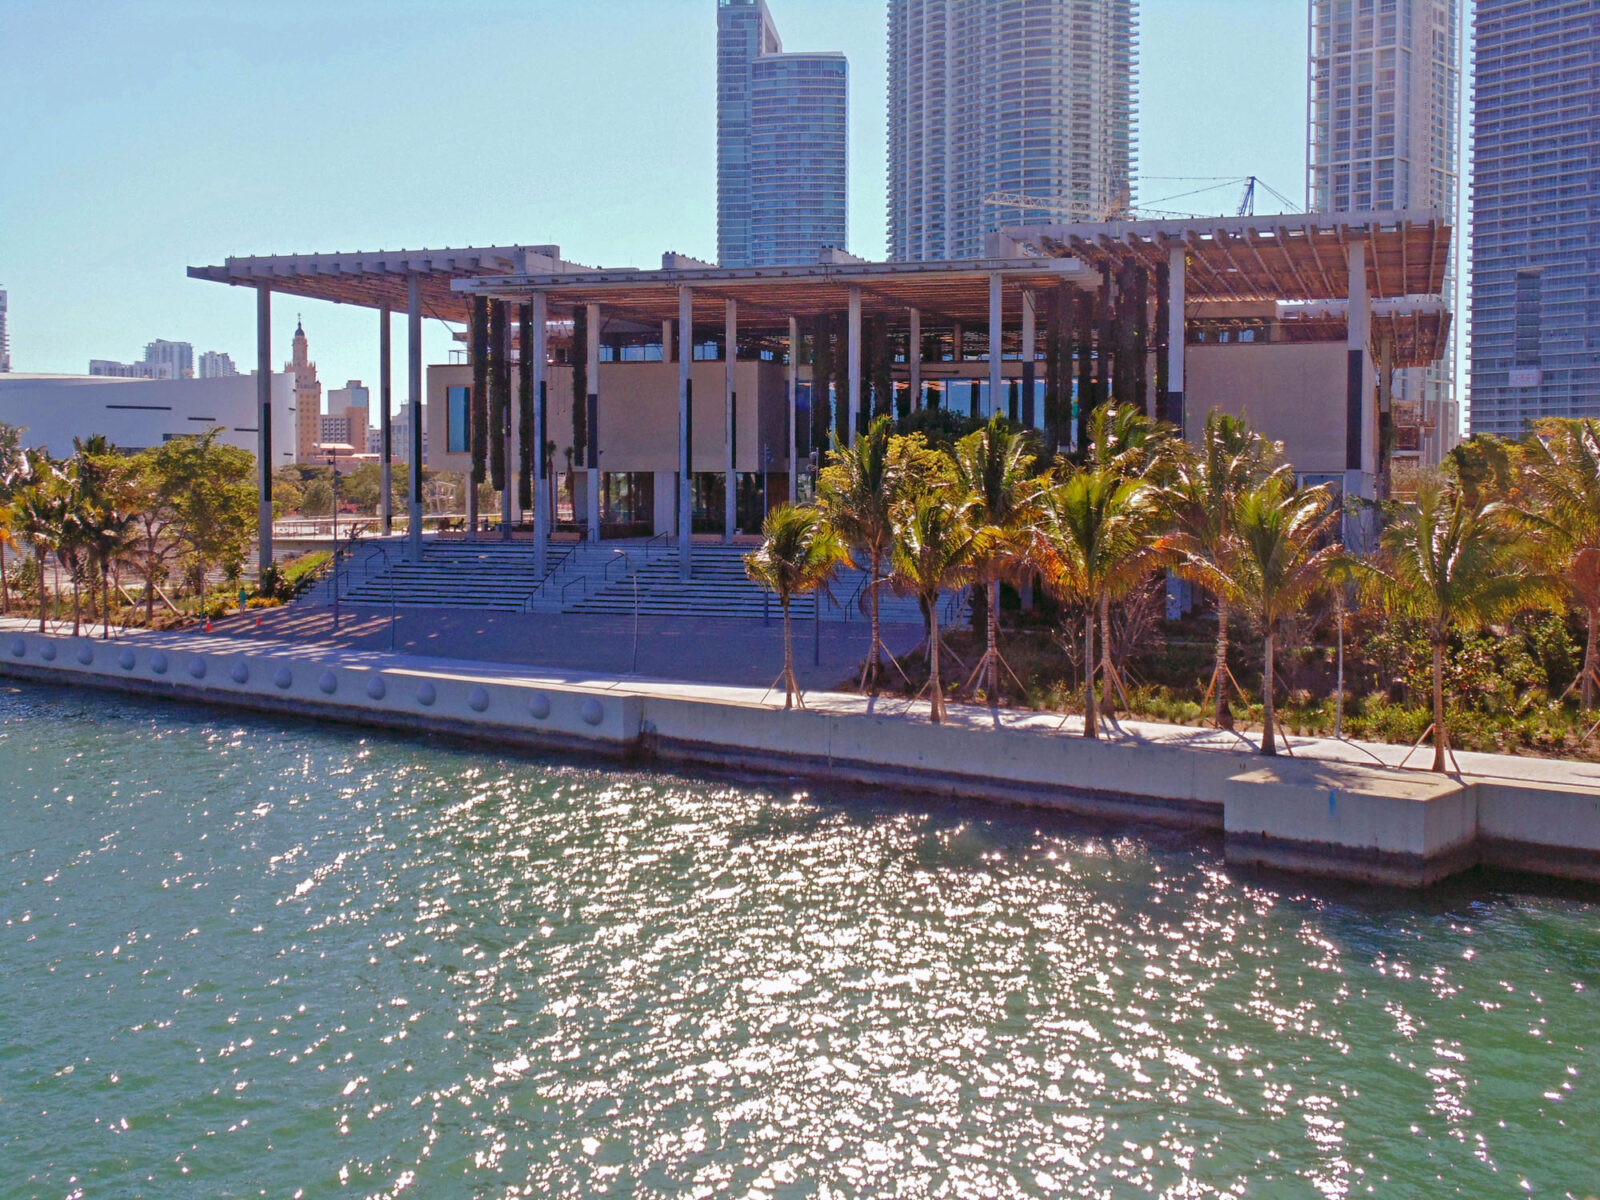 TEAK. PEREZ ART MUSEUM OF MIAMI